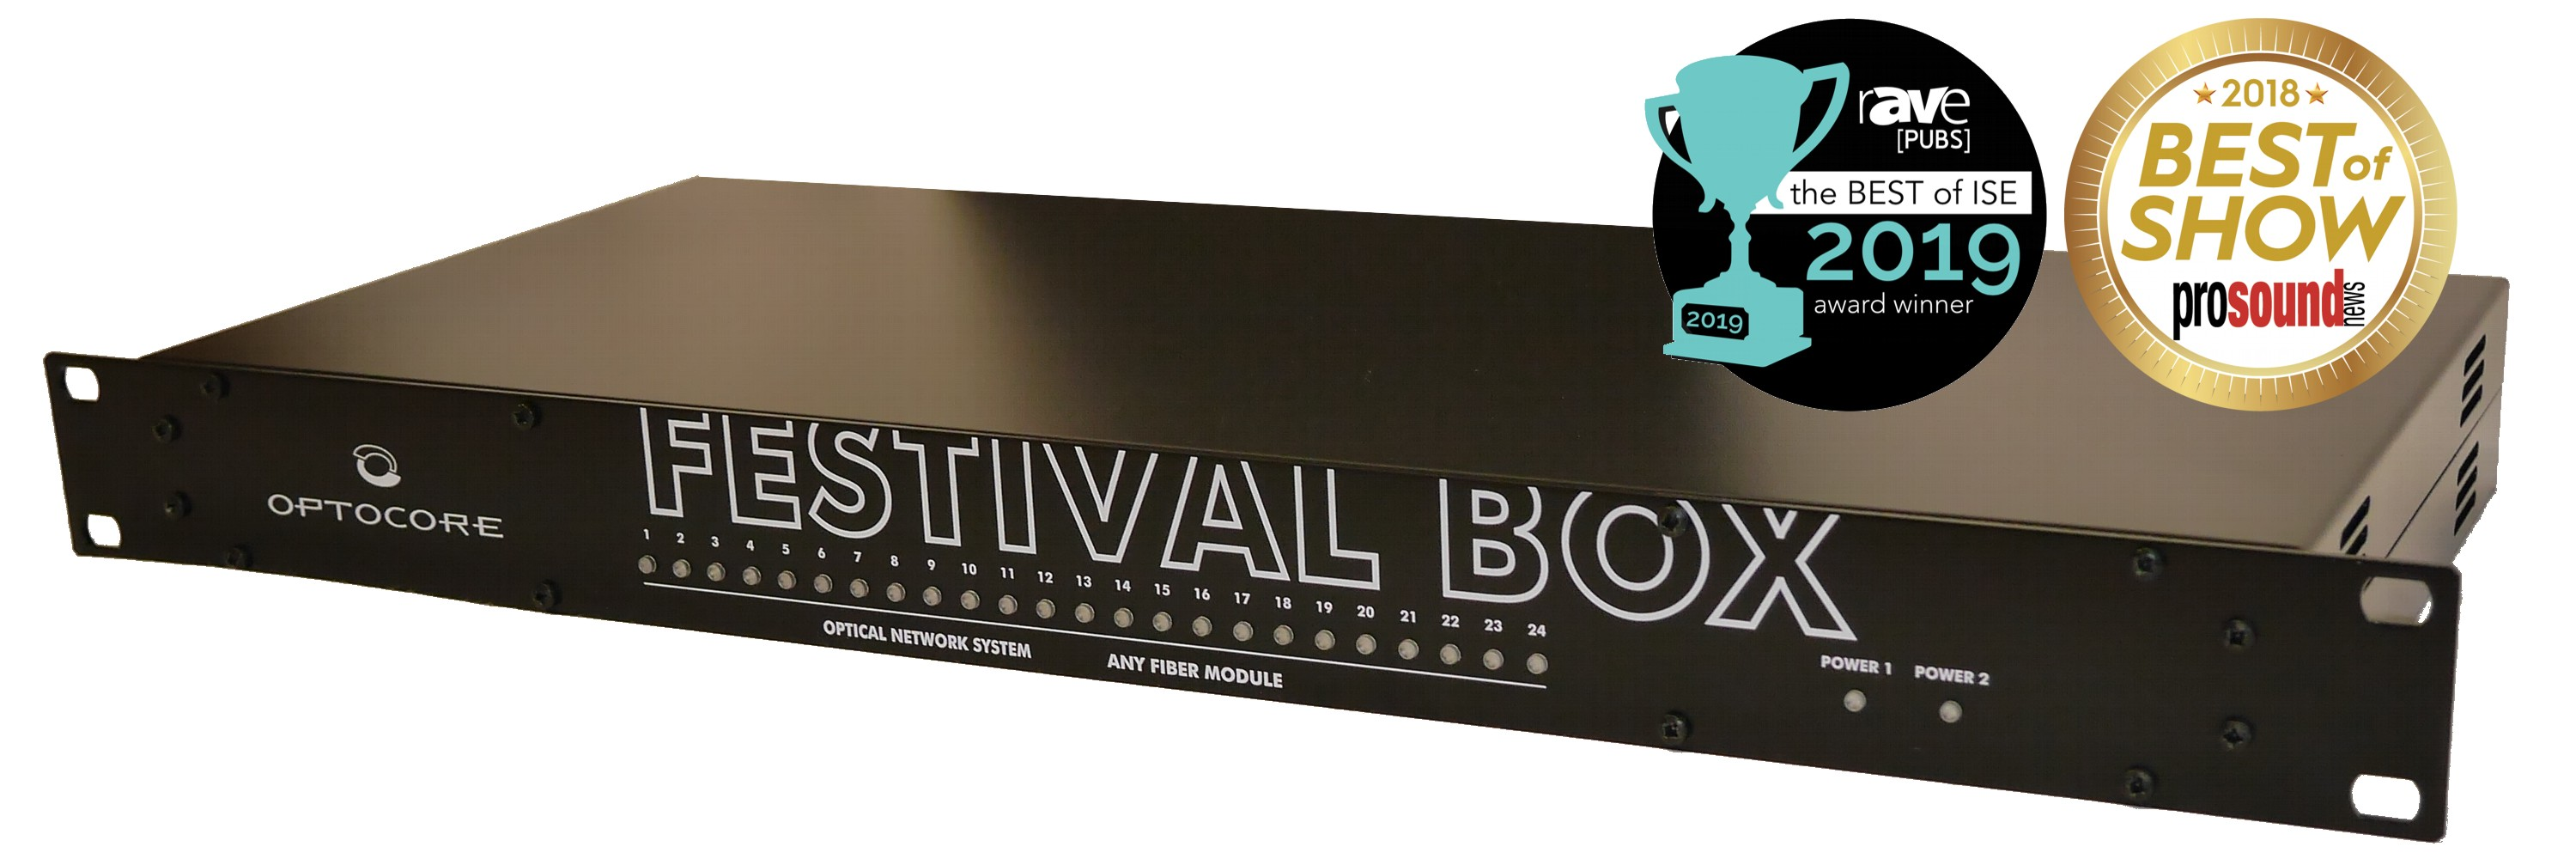 Festival Box w awards